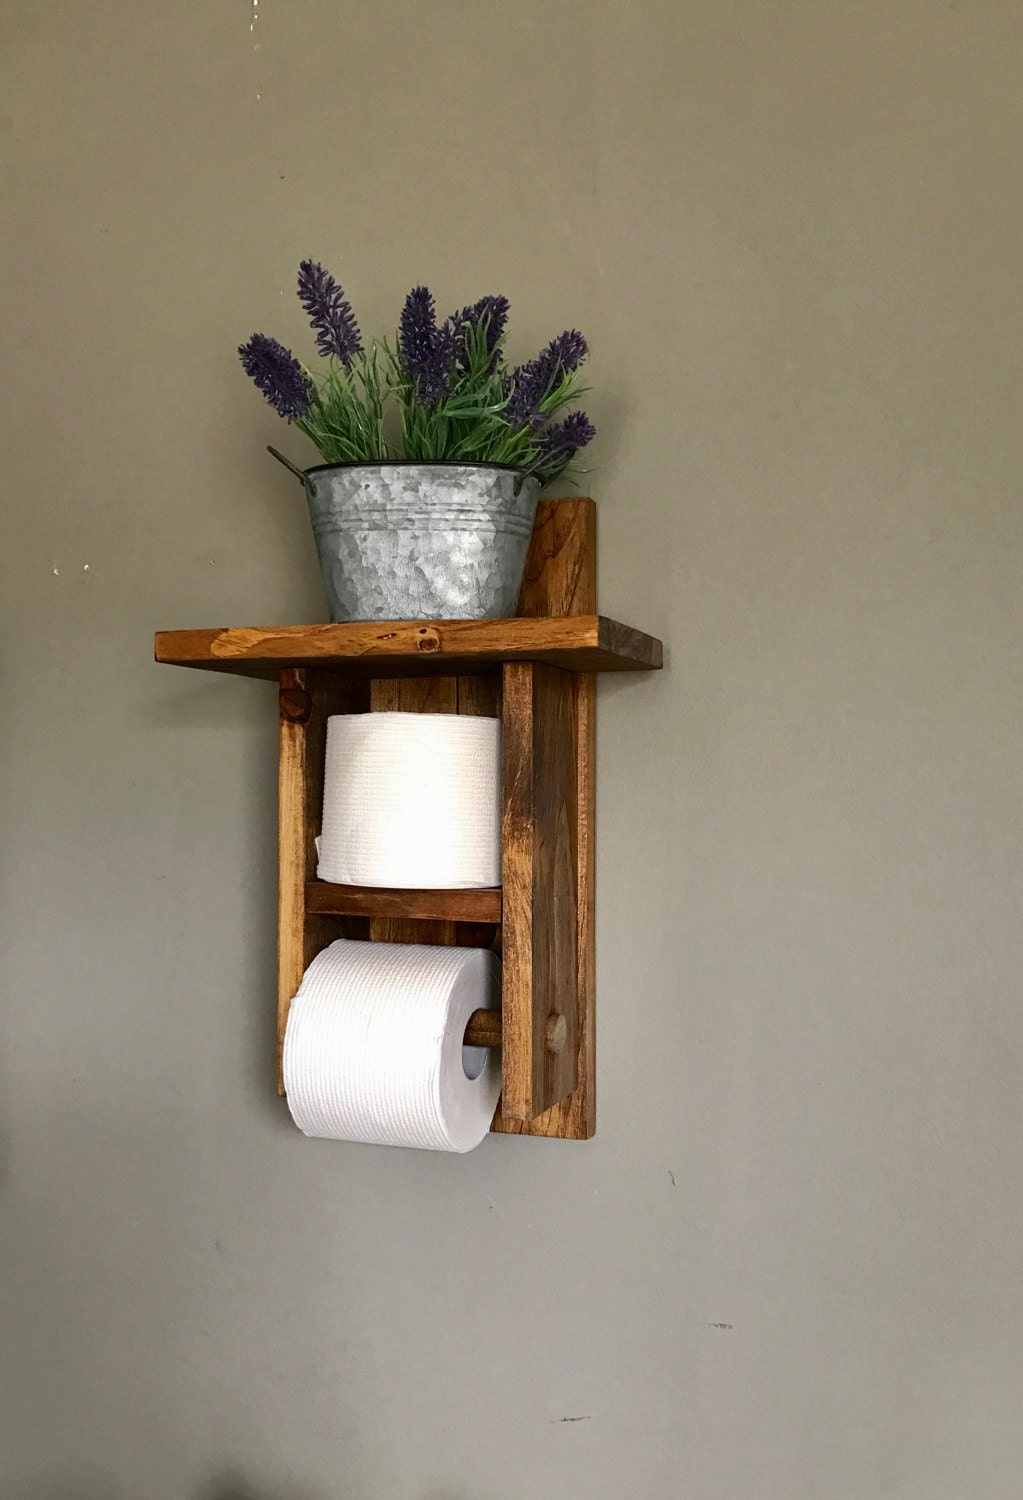 Toilet Paper Holder Bathroom Decor Toilet Paper Storage